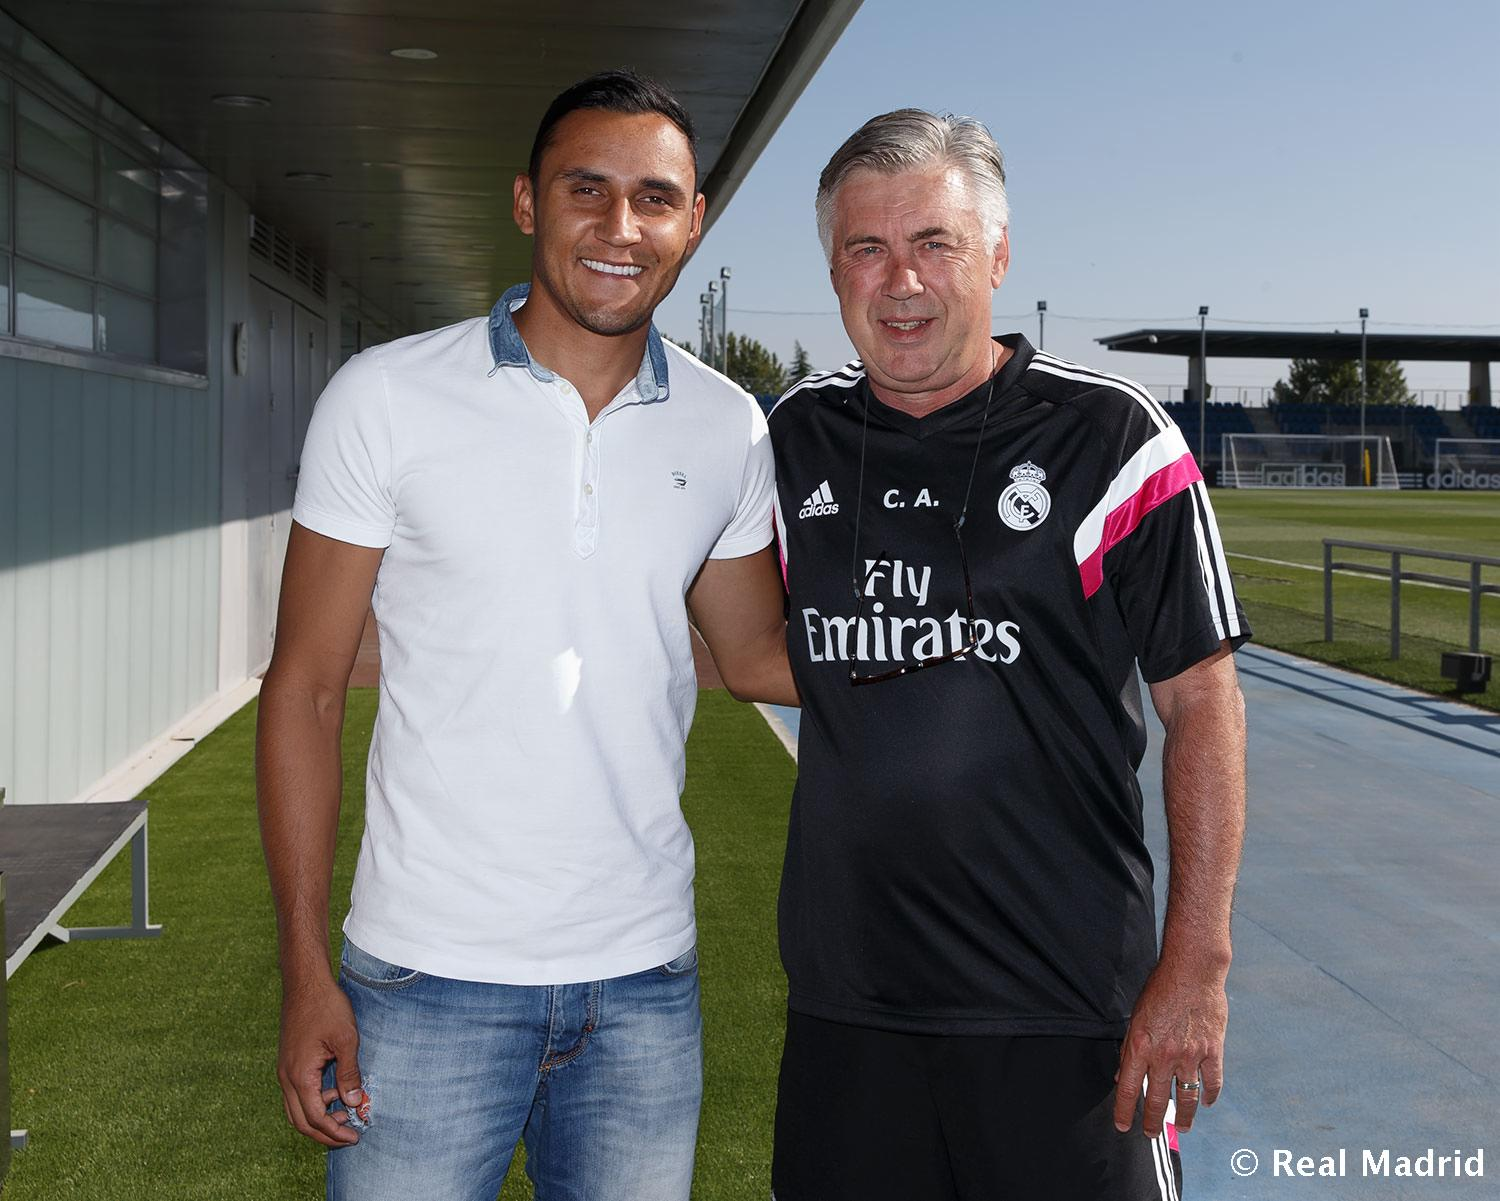 Real Madrid - Keylor Navas visita la Ciudad Real Madrid - 04-08-2014